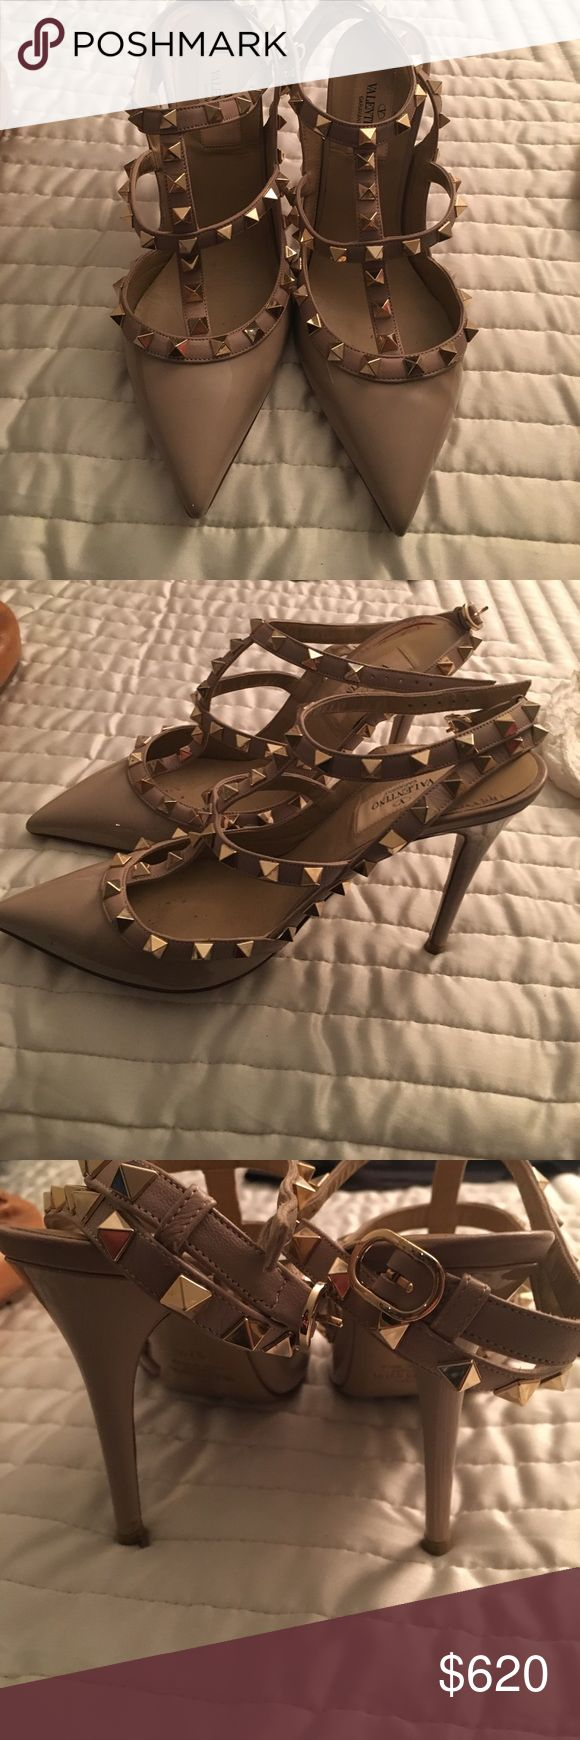 Valentino Rock Stud Heels Nude patent leather Valentino Rockstud shoes with gold studs. In great condition and gently worn! Makes every outfit look amazing. 👠 Valentino Shoes Heels